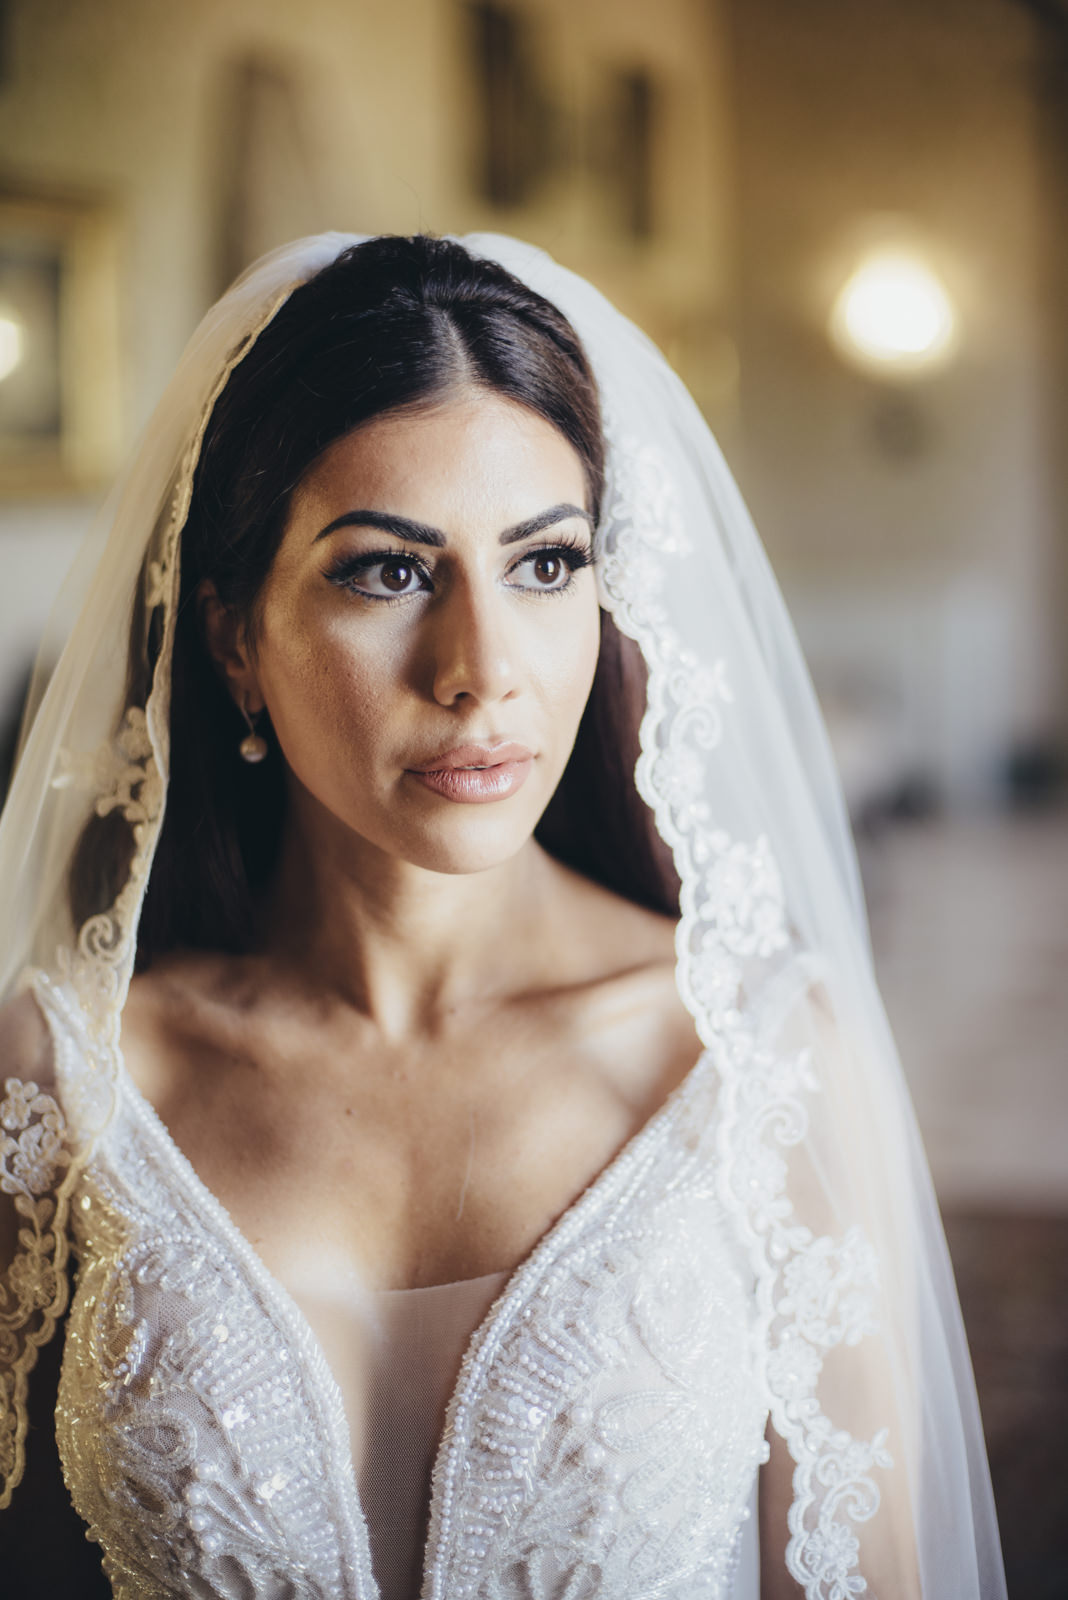 bride's portrait with the wedding veil